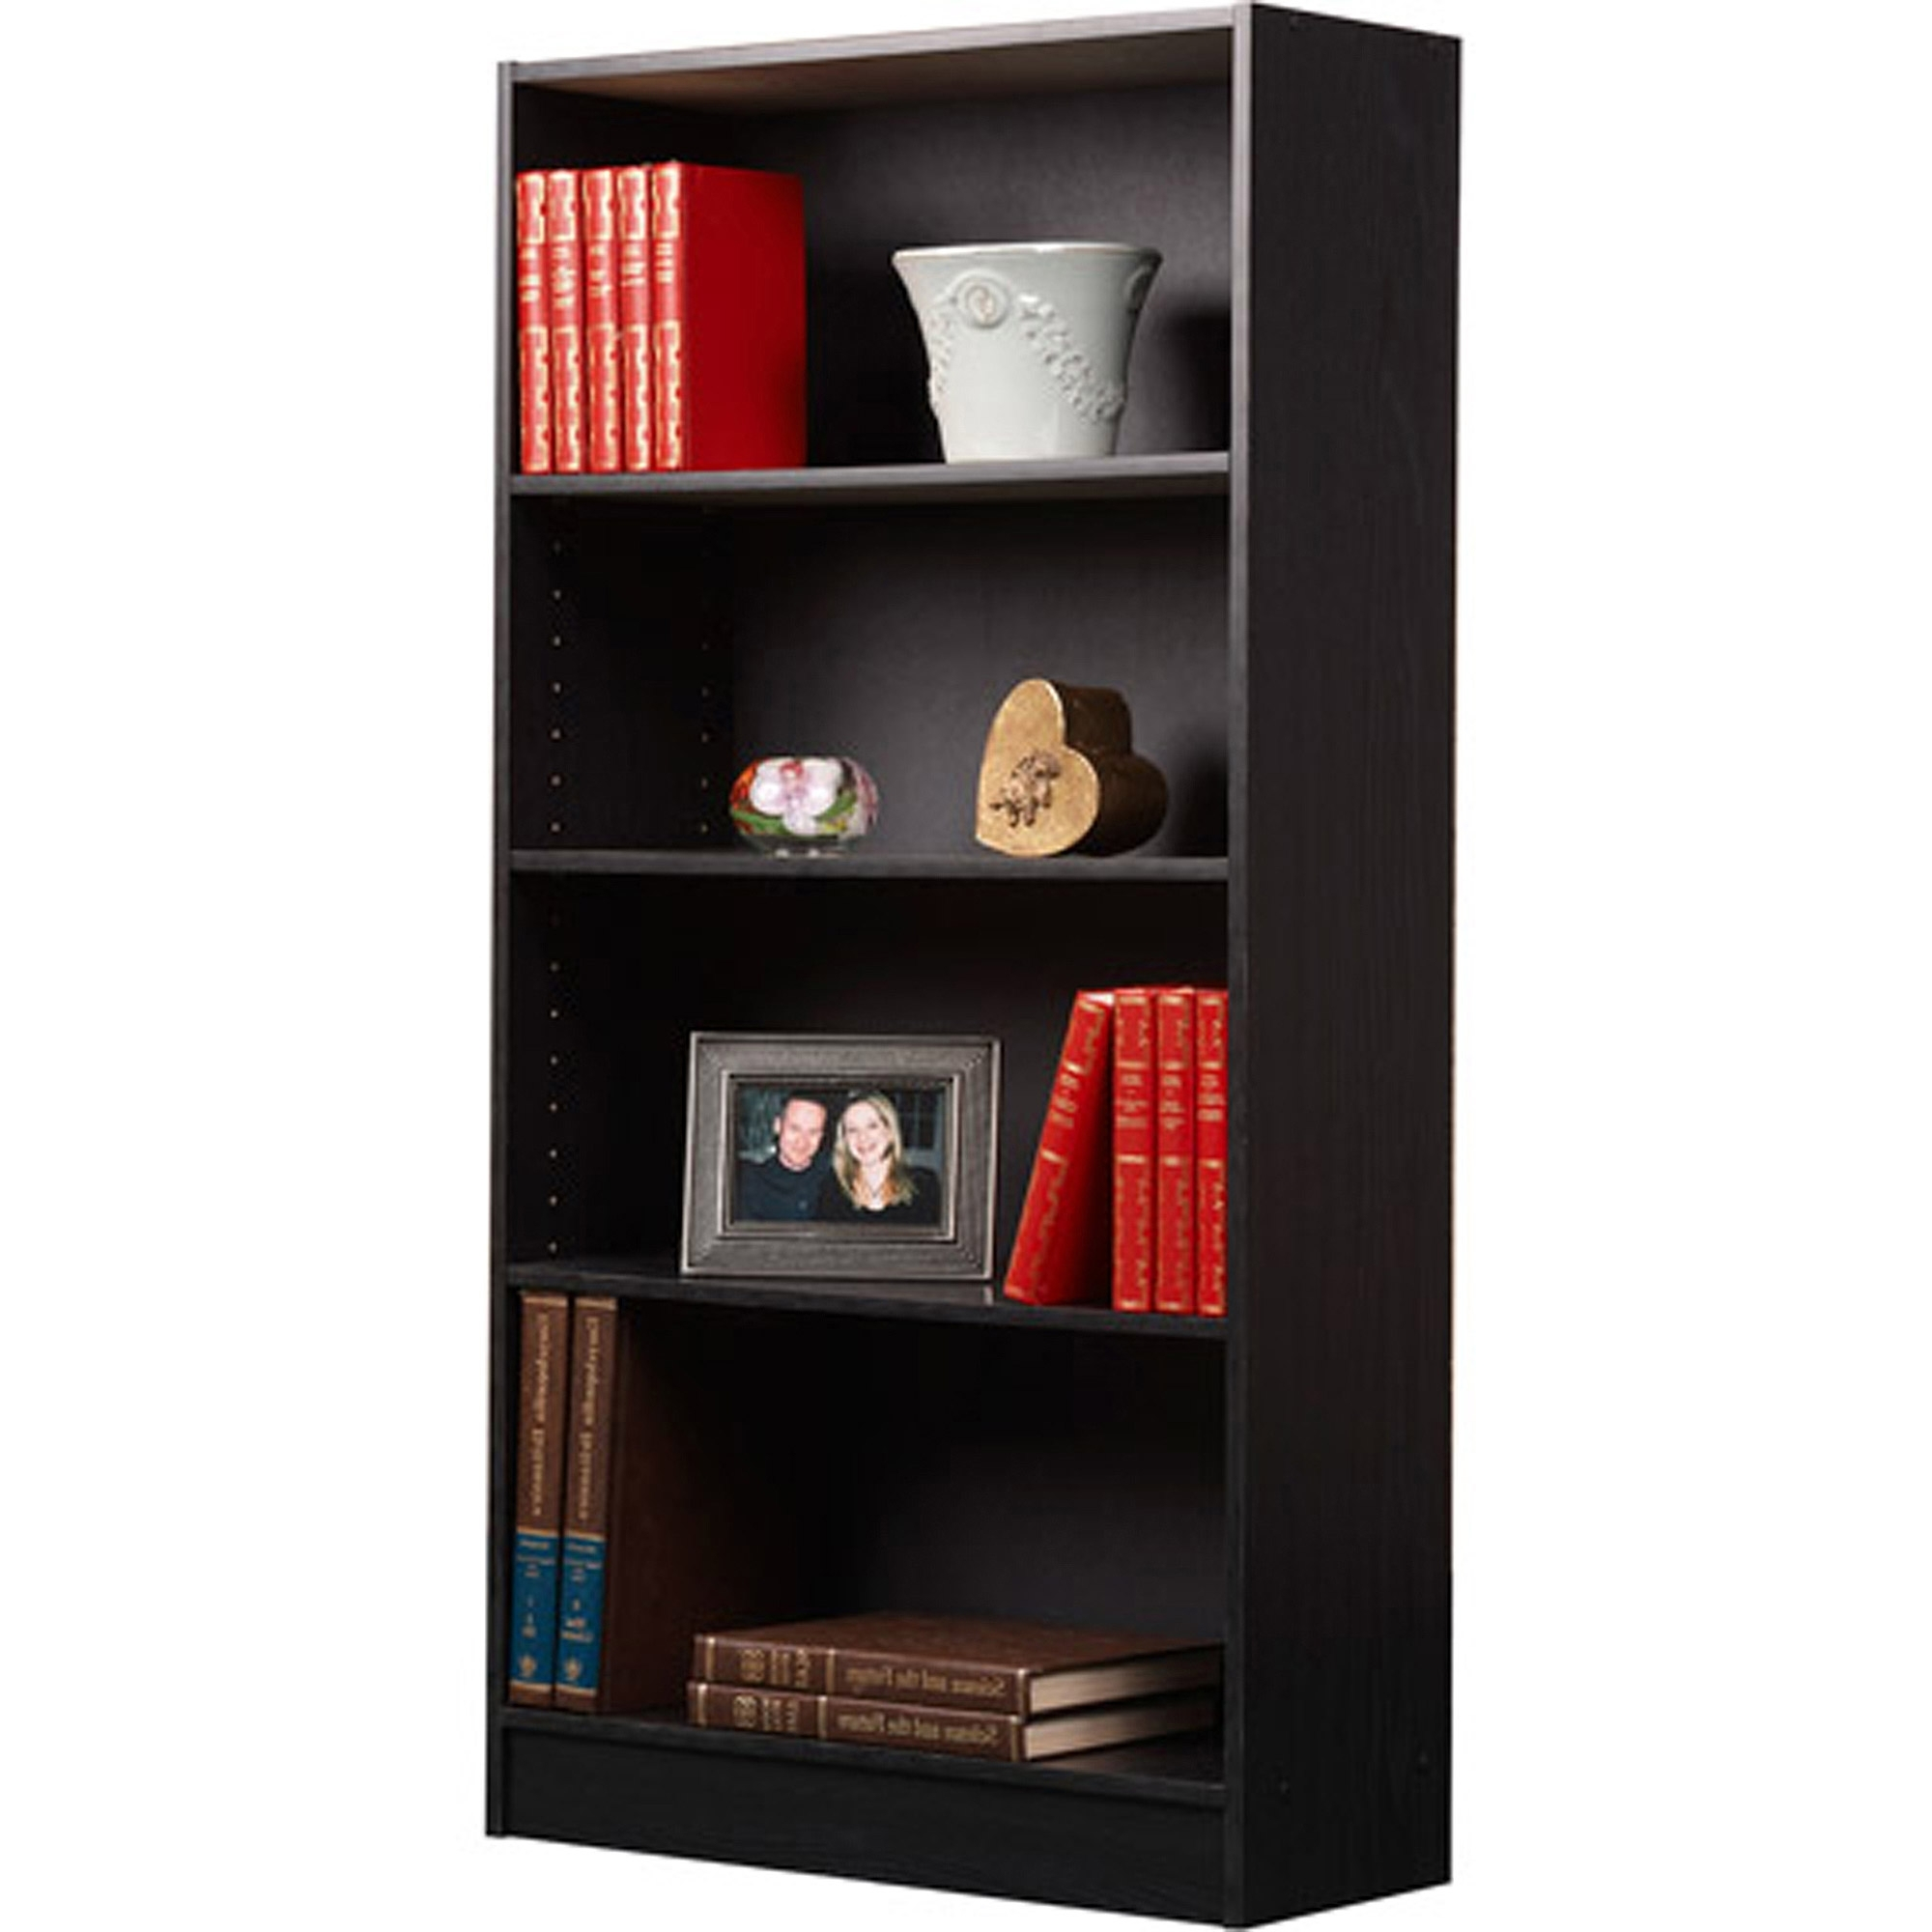 Fashionable Black Bookcases Walmart With Orion 4 Shelf Bookcases, Set Of 2 – Walmart (View 2 of 15)